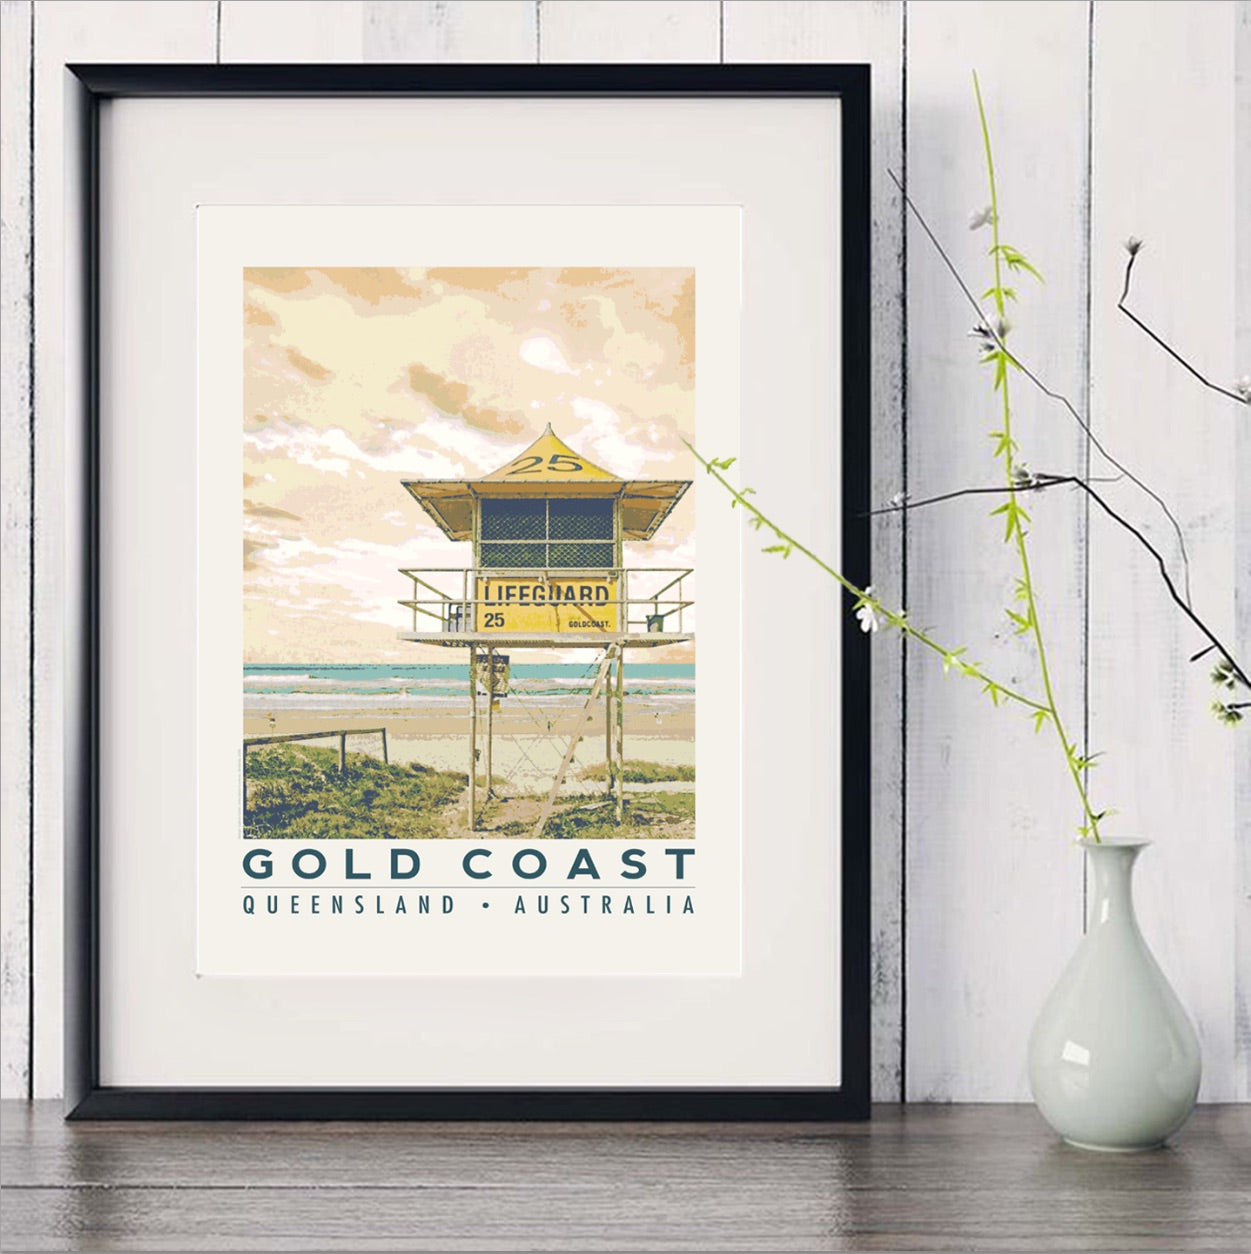 A3 Gold Coast Queensland Poster 'Lifeguard Tower' in black frame